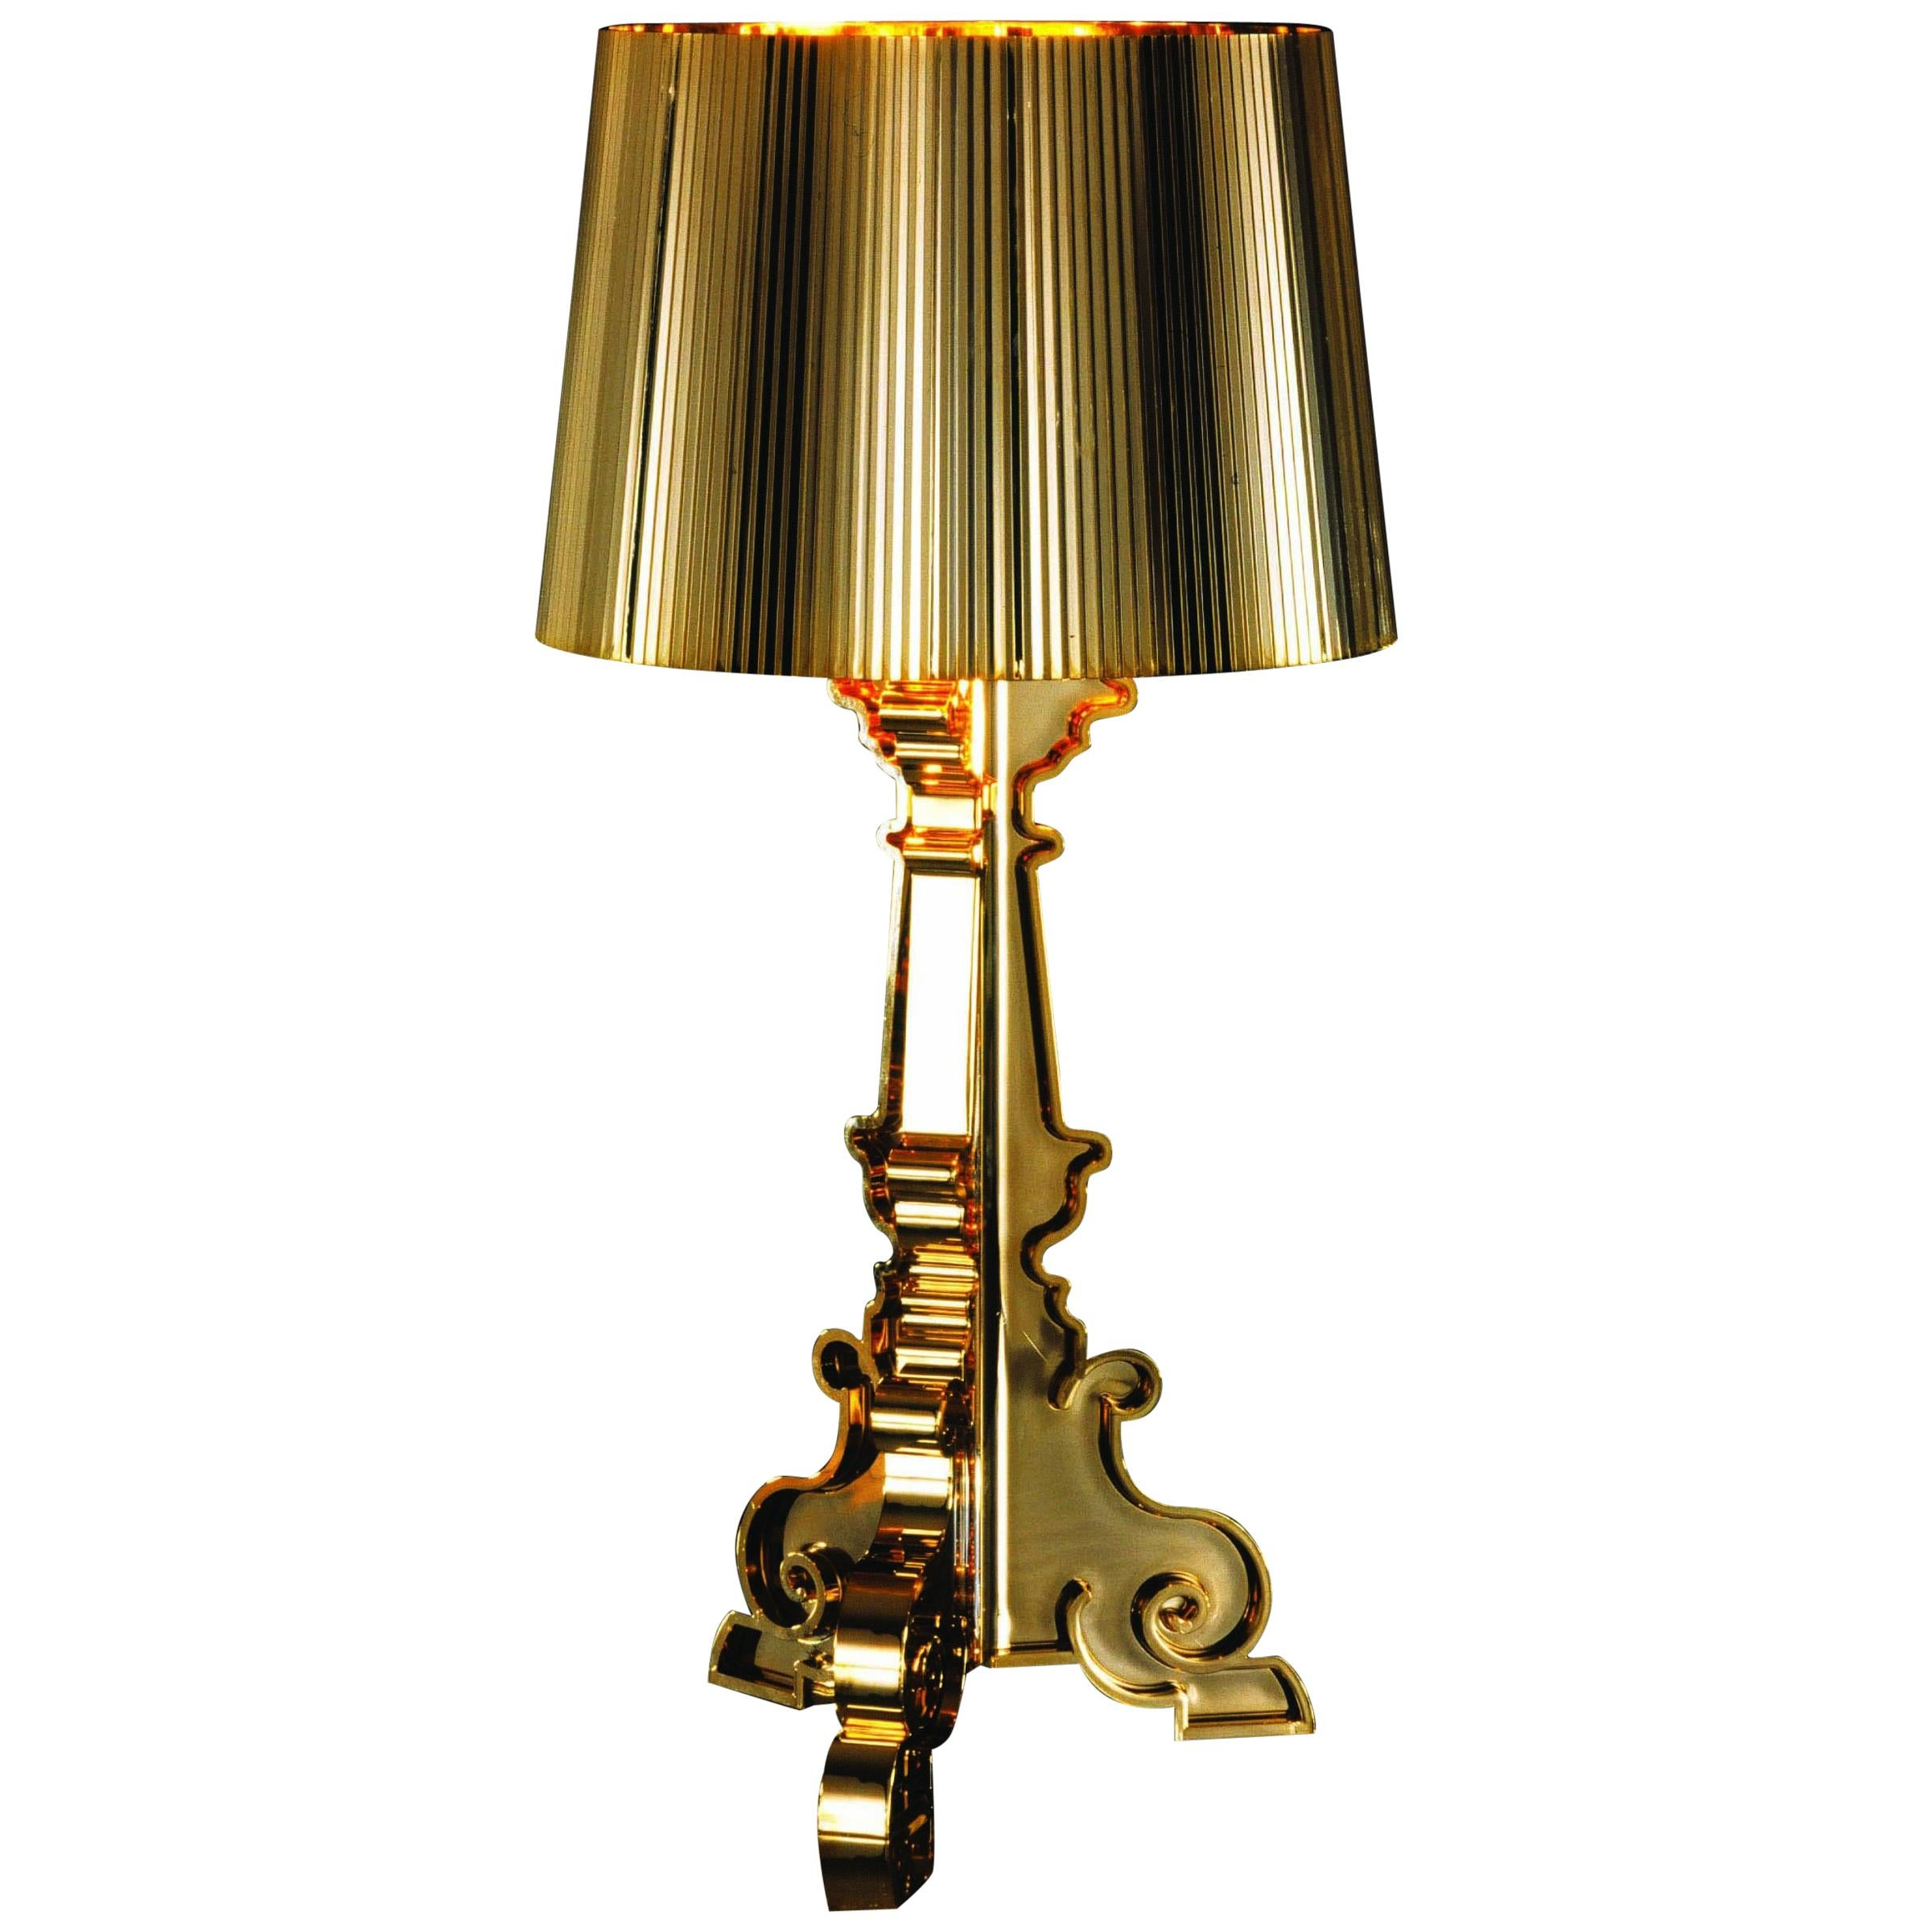 Kartell Bourgie Lamp in Gold by Ferruccio Laviani